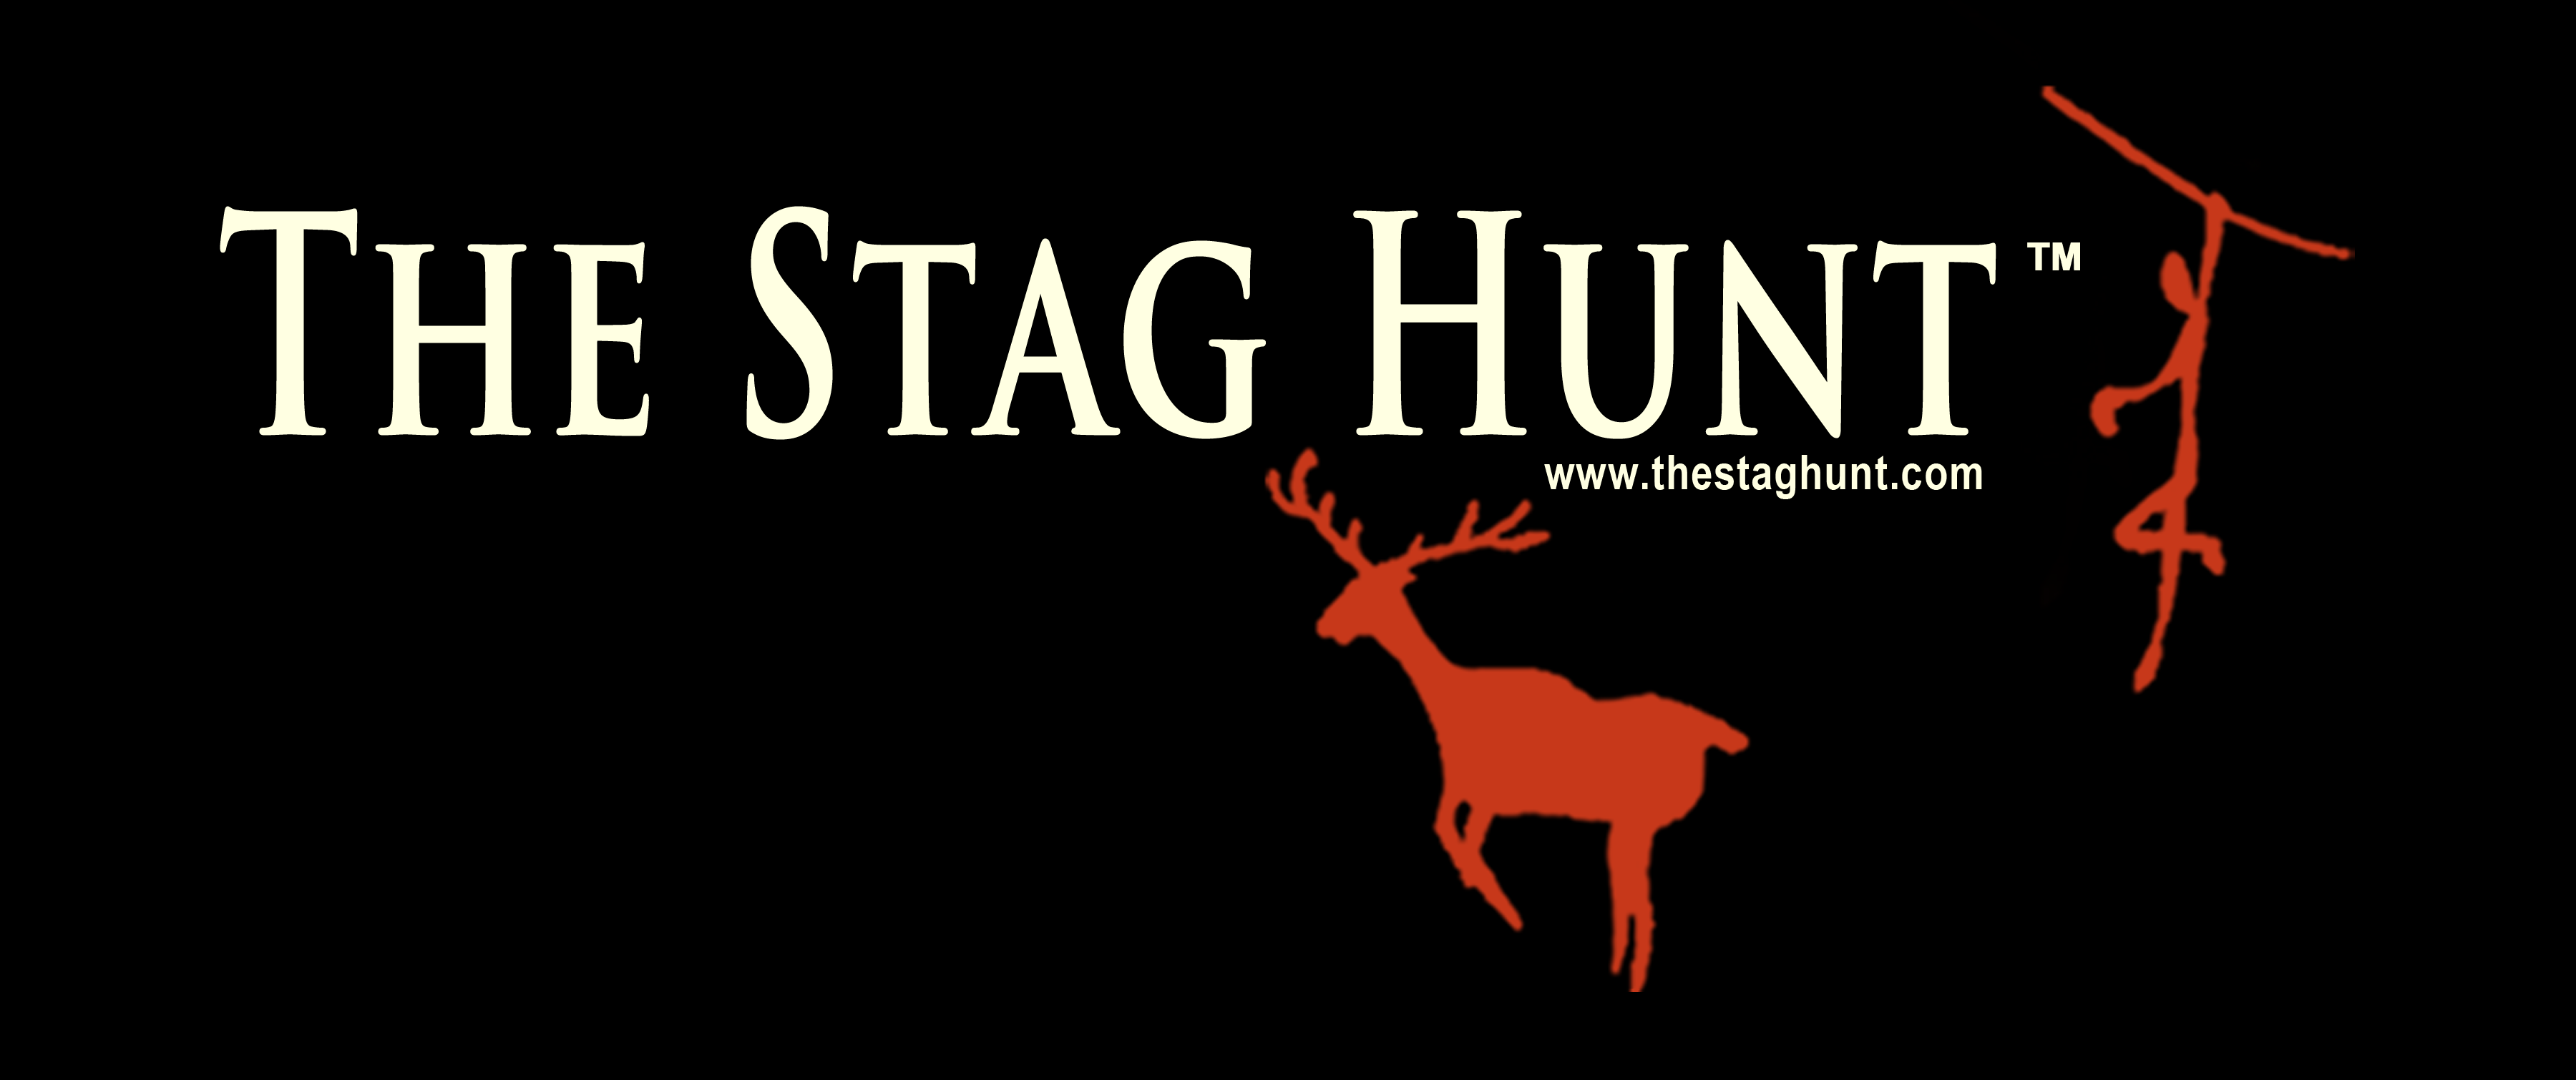 Stag_hunt